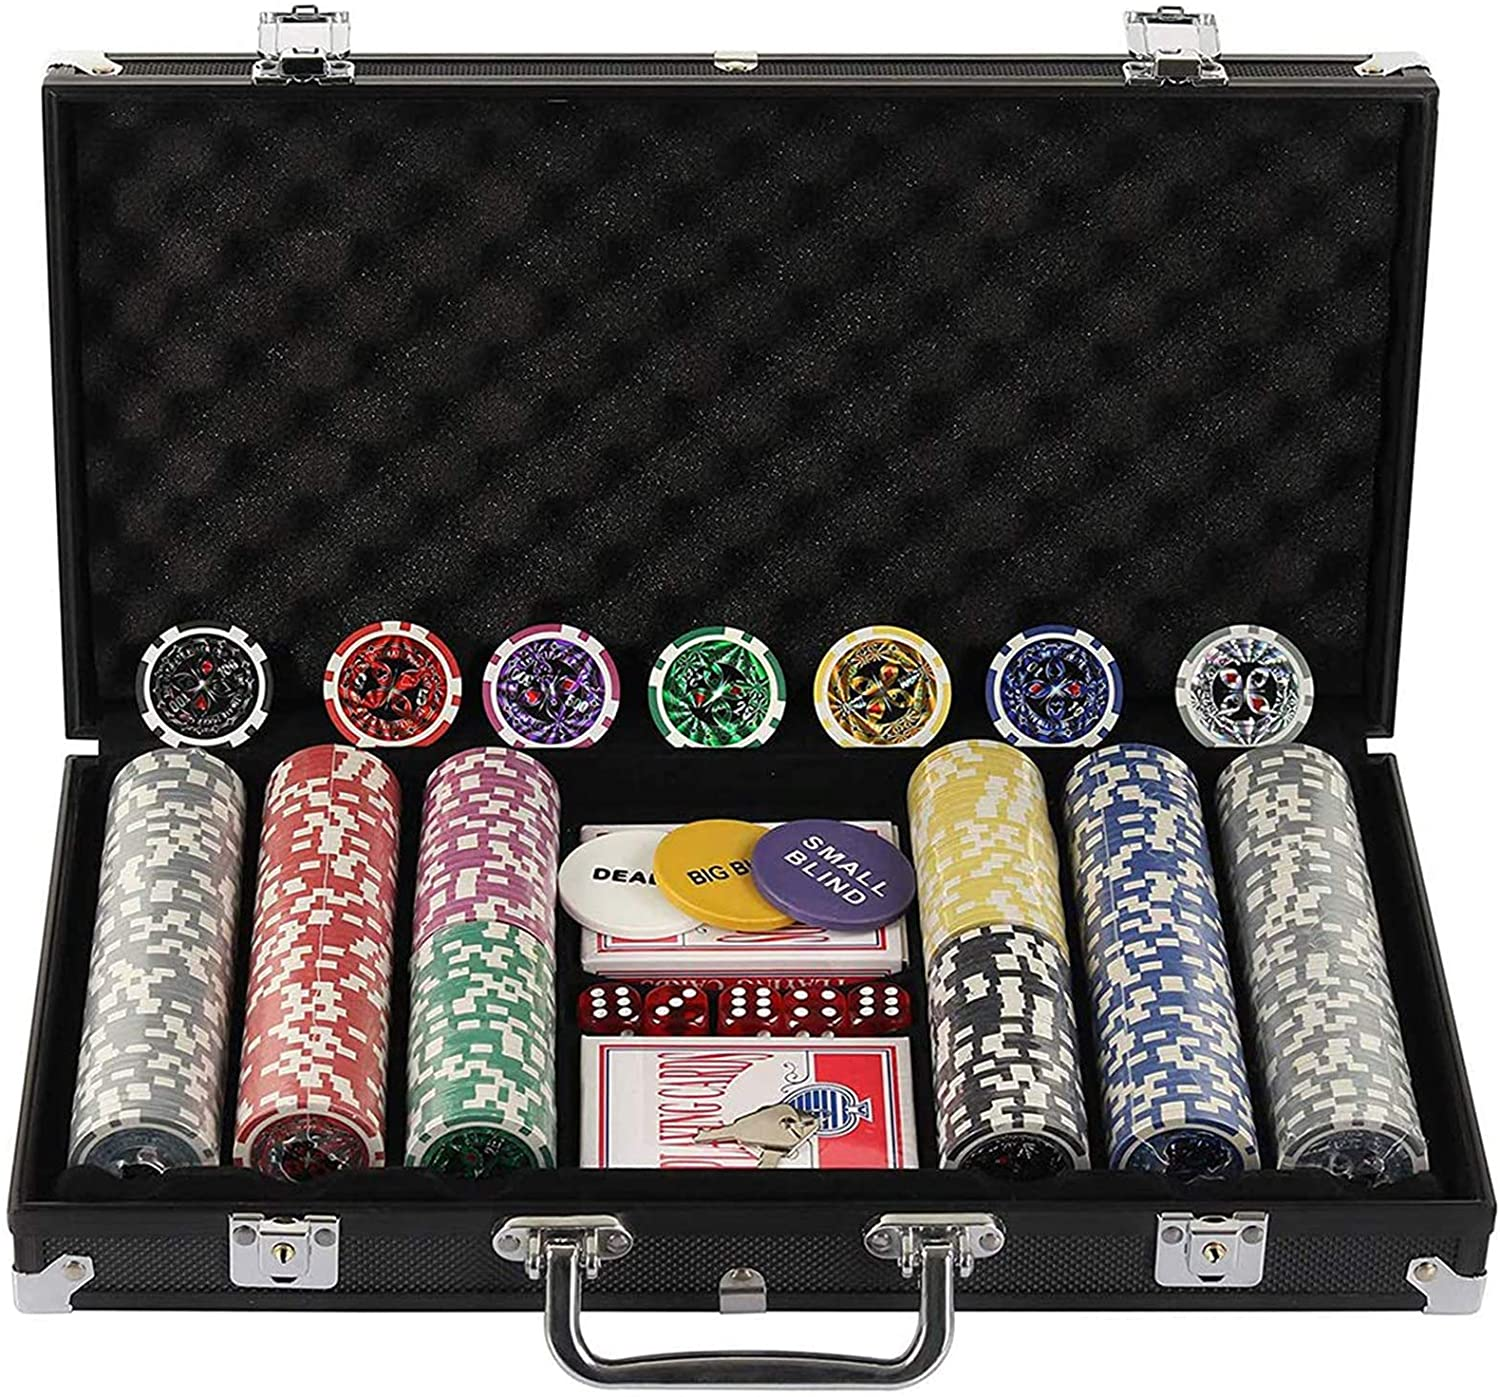 Texas Hold 'Em Poker Chip Set Display4top